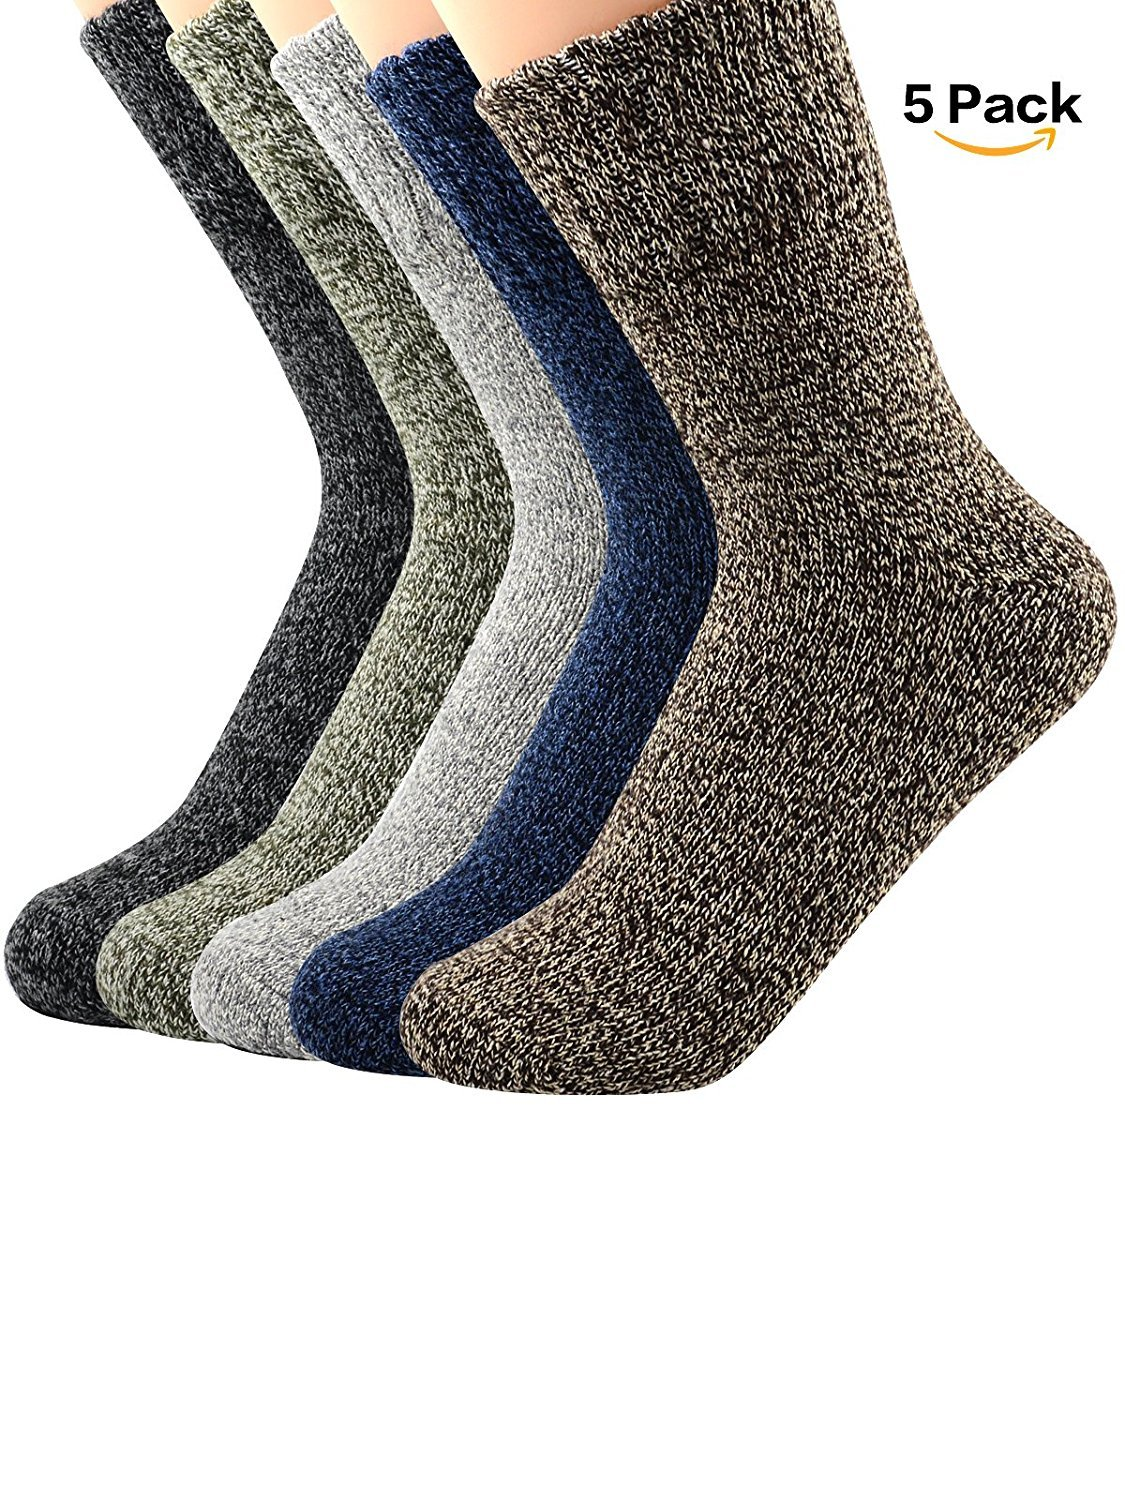 5 Pairs Womens Cold Weather Soft Warm Thick Knit Crew Casual Wool Bombas Socks Urban Virgin MNUCBUVCFTA9198